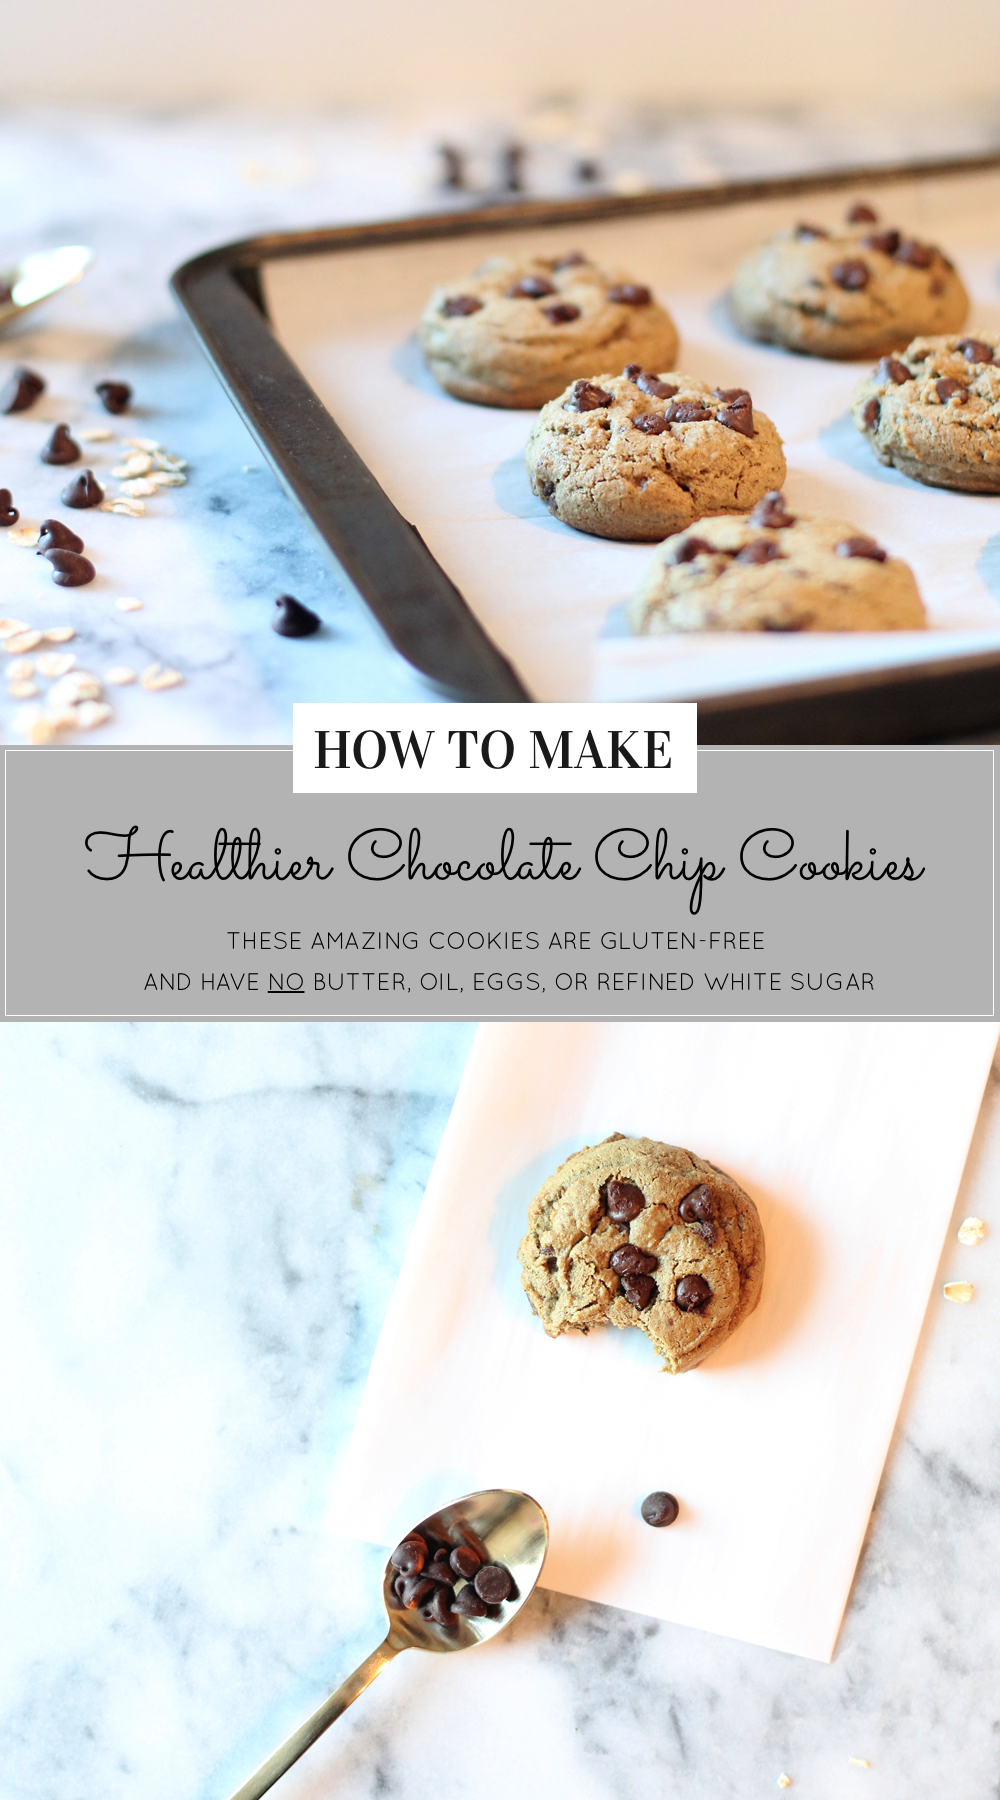 How to Make Healthier Chocolate Chip Cookies that are gluten-free and have NO butter, oil, eggs, white flour, or refined white sugar. Click through for the easy recipe. | glitterinc.com | @glitterinc